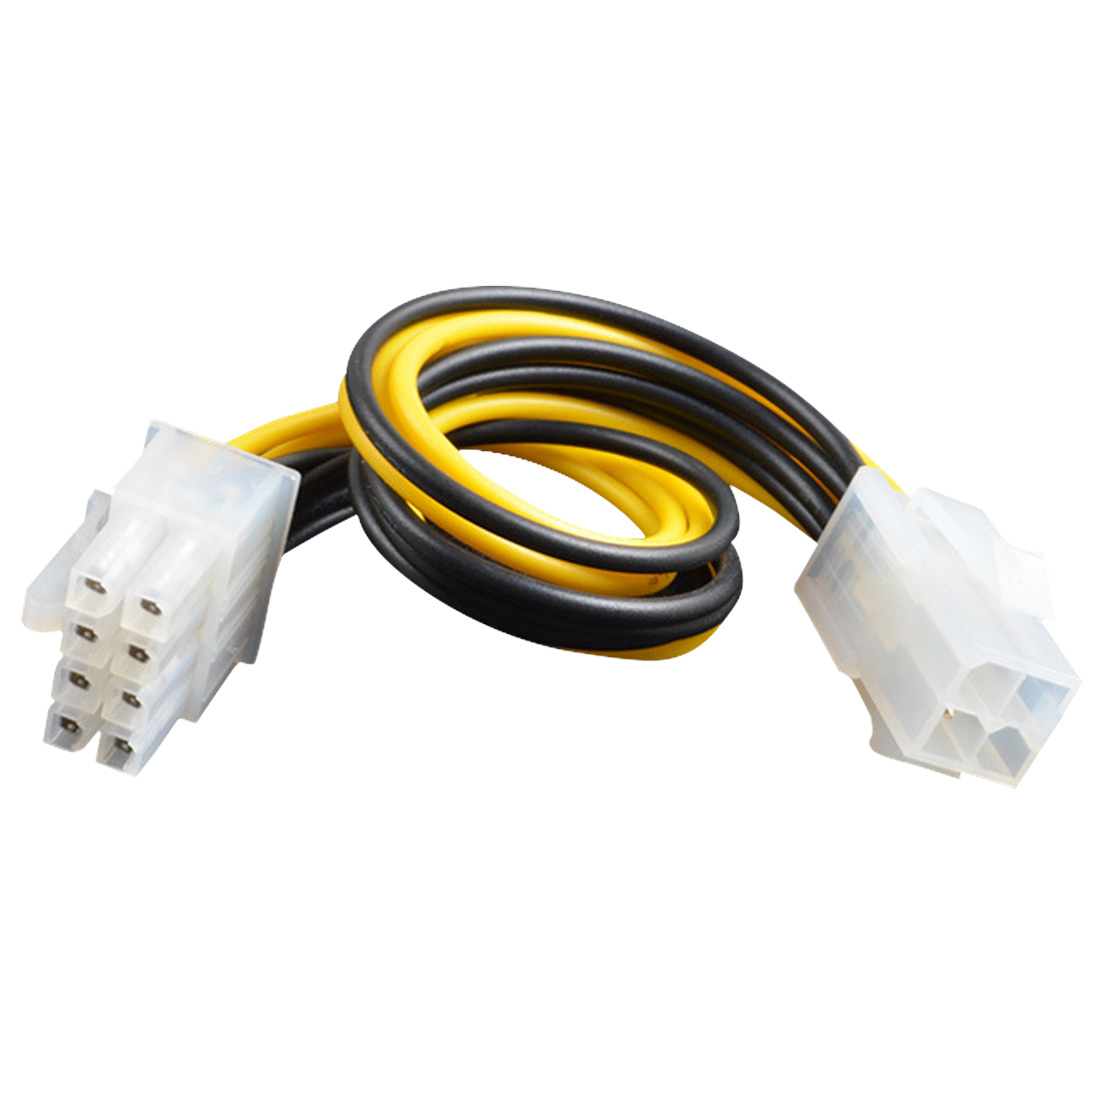 New Computer Cables Professional ATX 4 Pin Male To 8 Pin Female EPS Power Cable Cord Adapter CPU Power Supply Connector